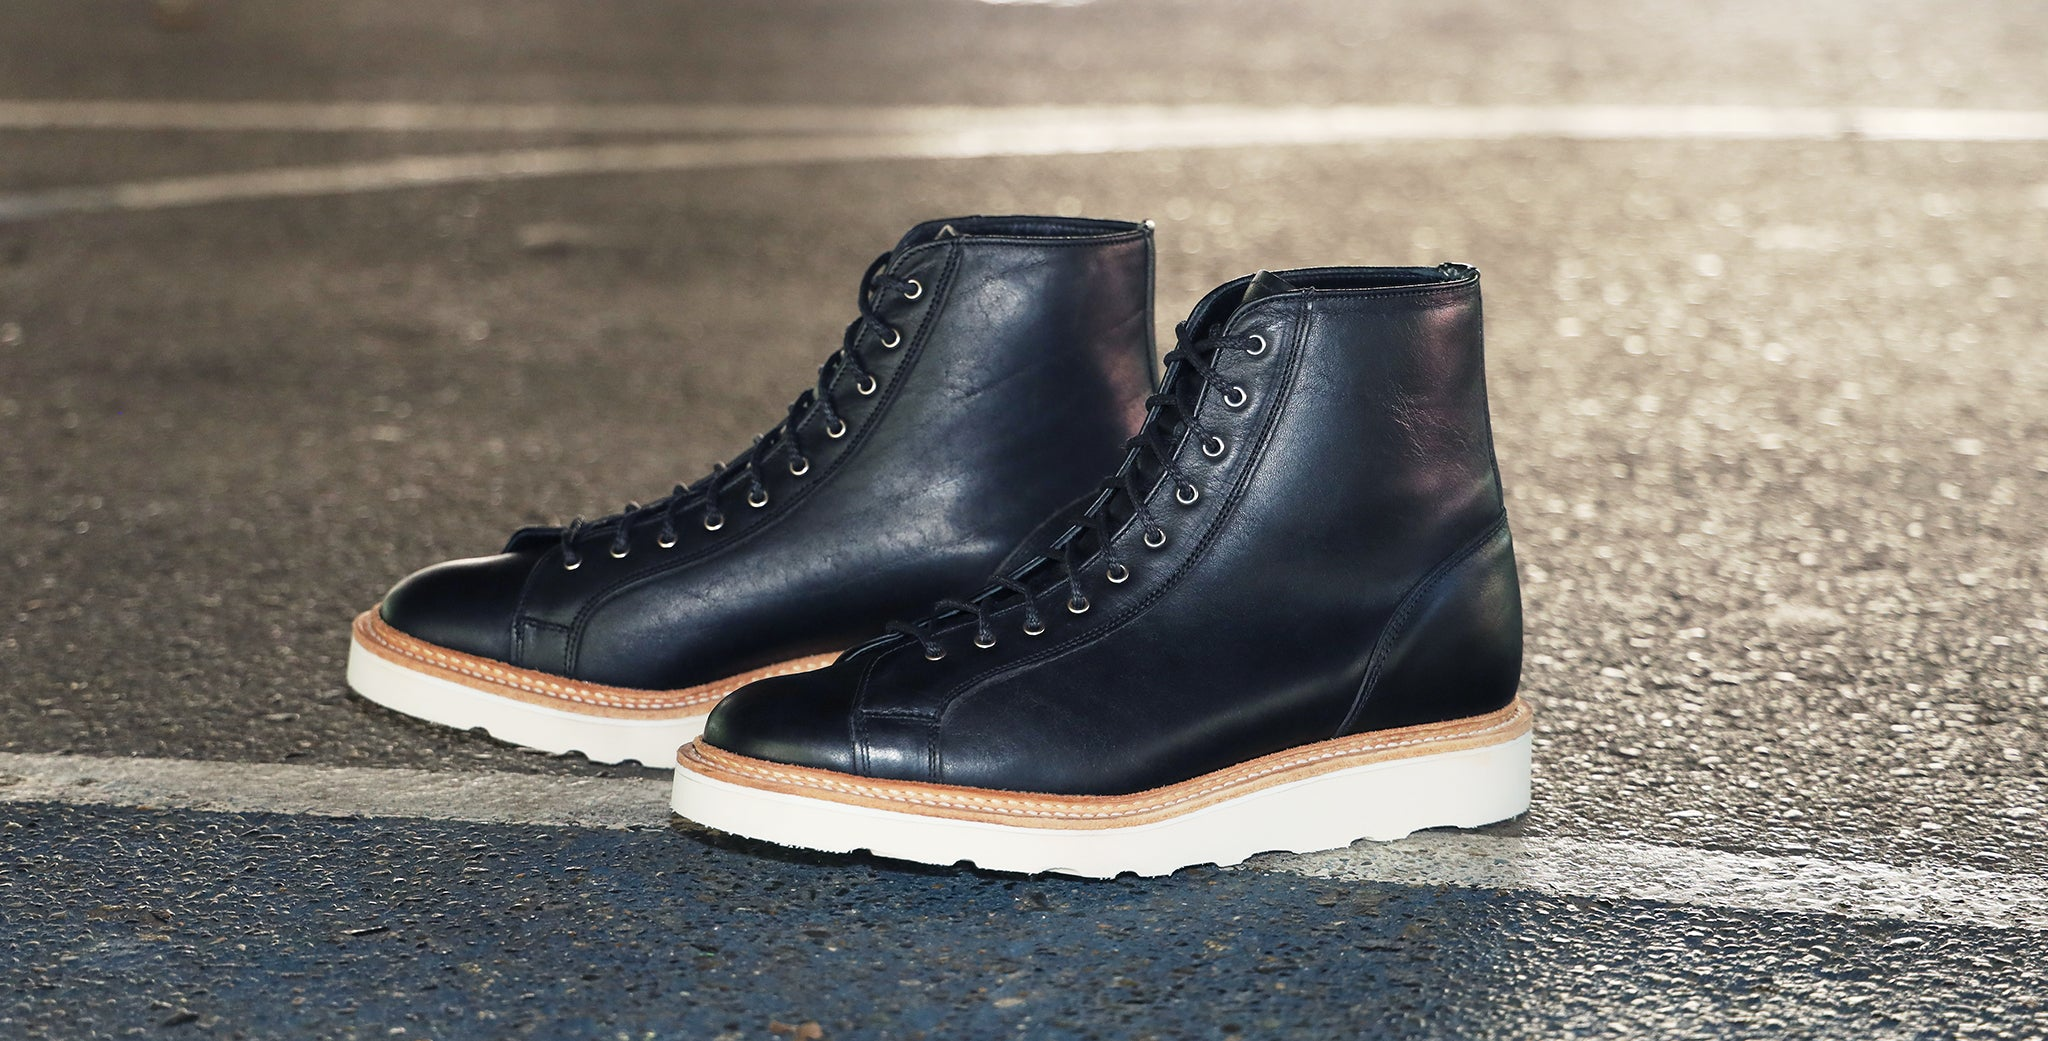 Super Monkey Boot Trickers Division Road